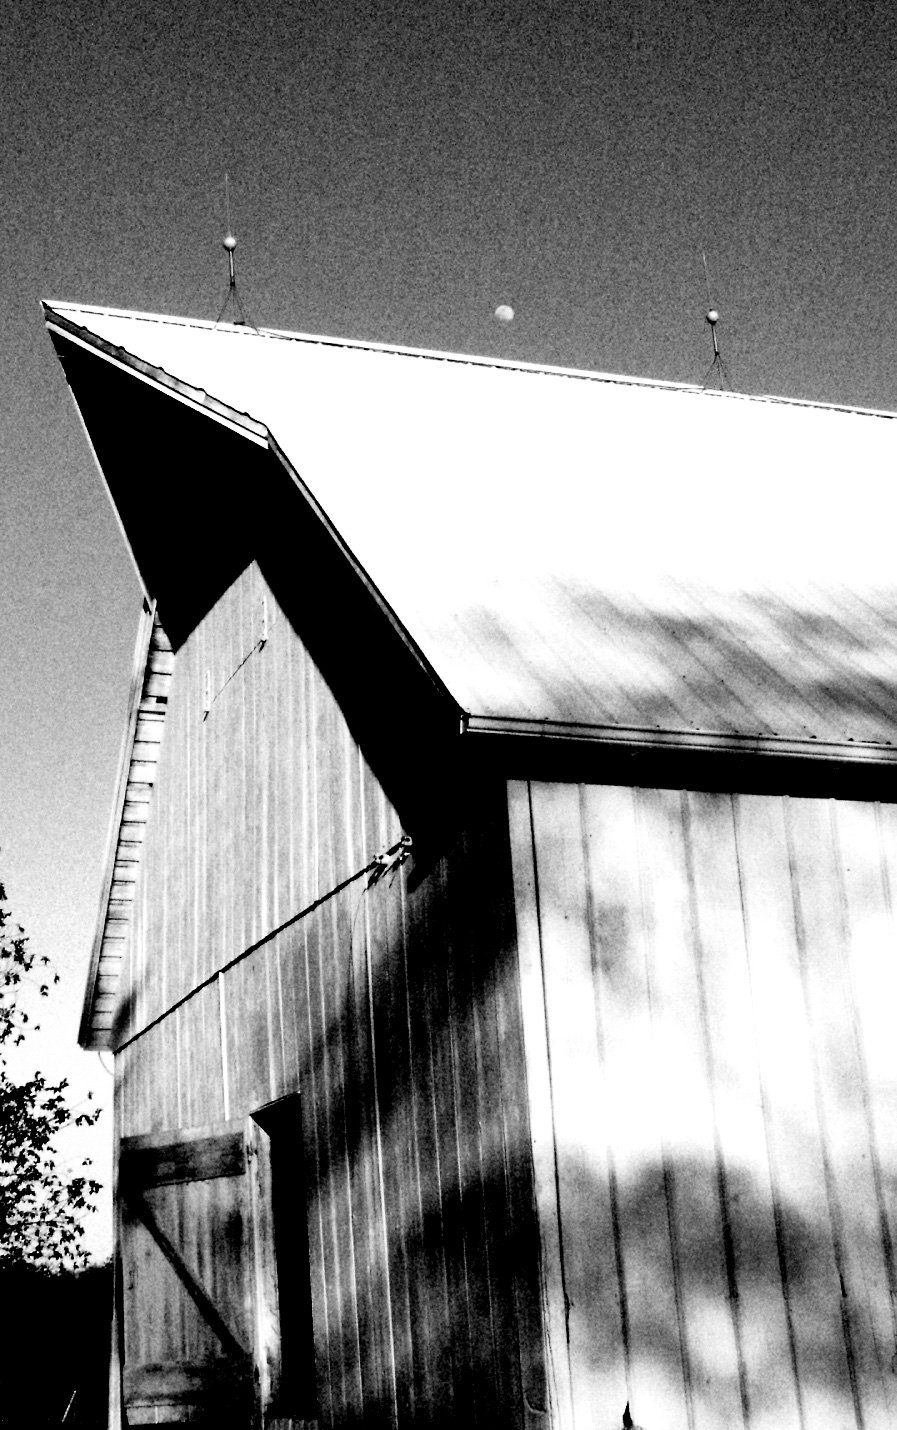 Cow Barn, May 2003